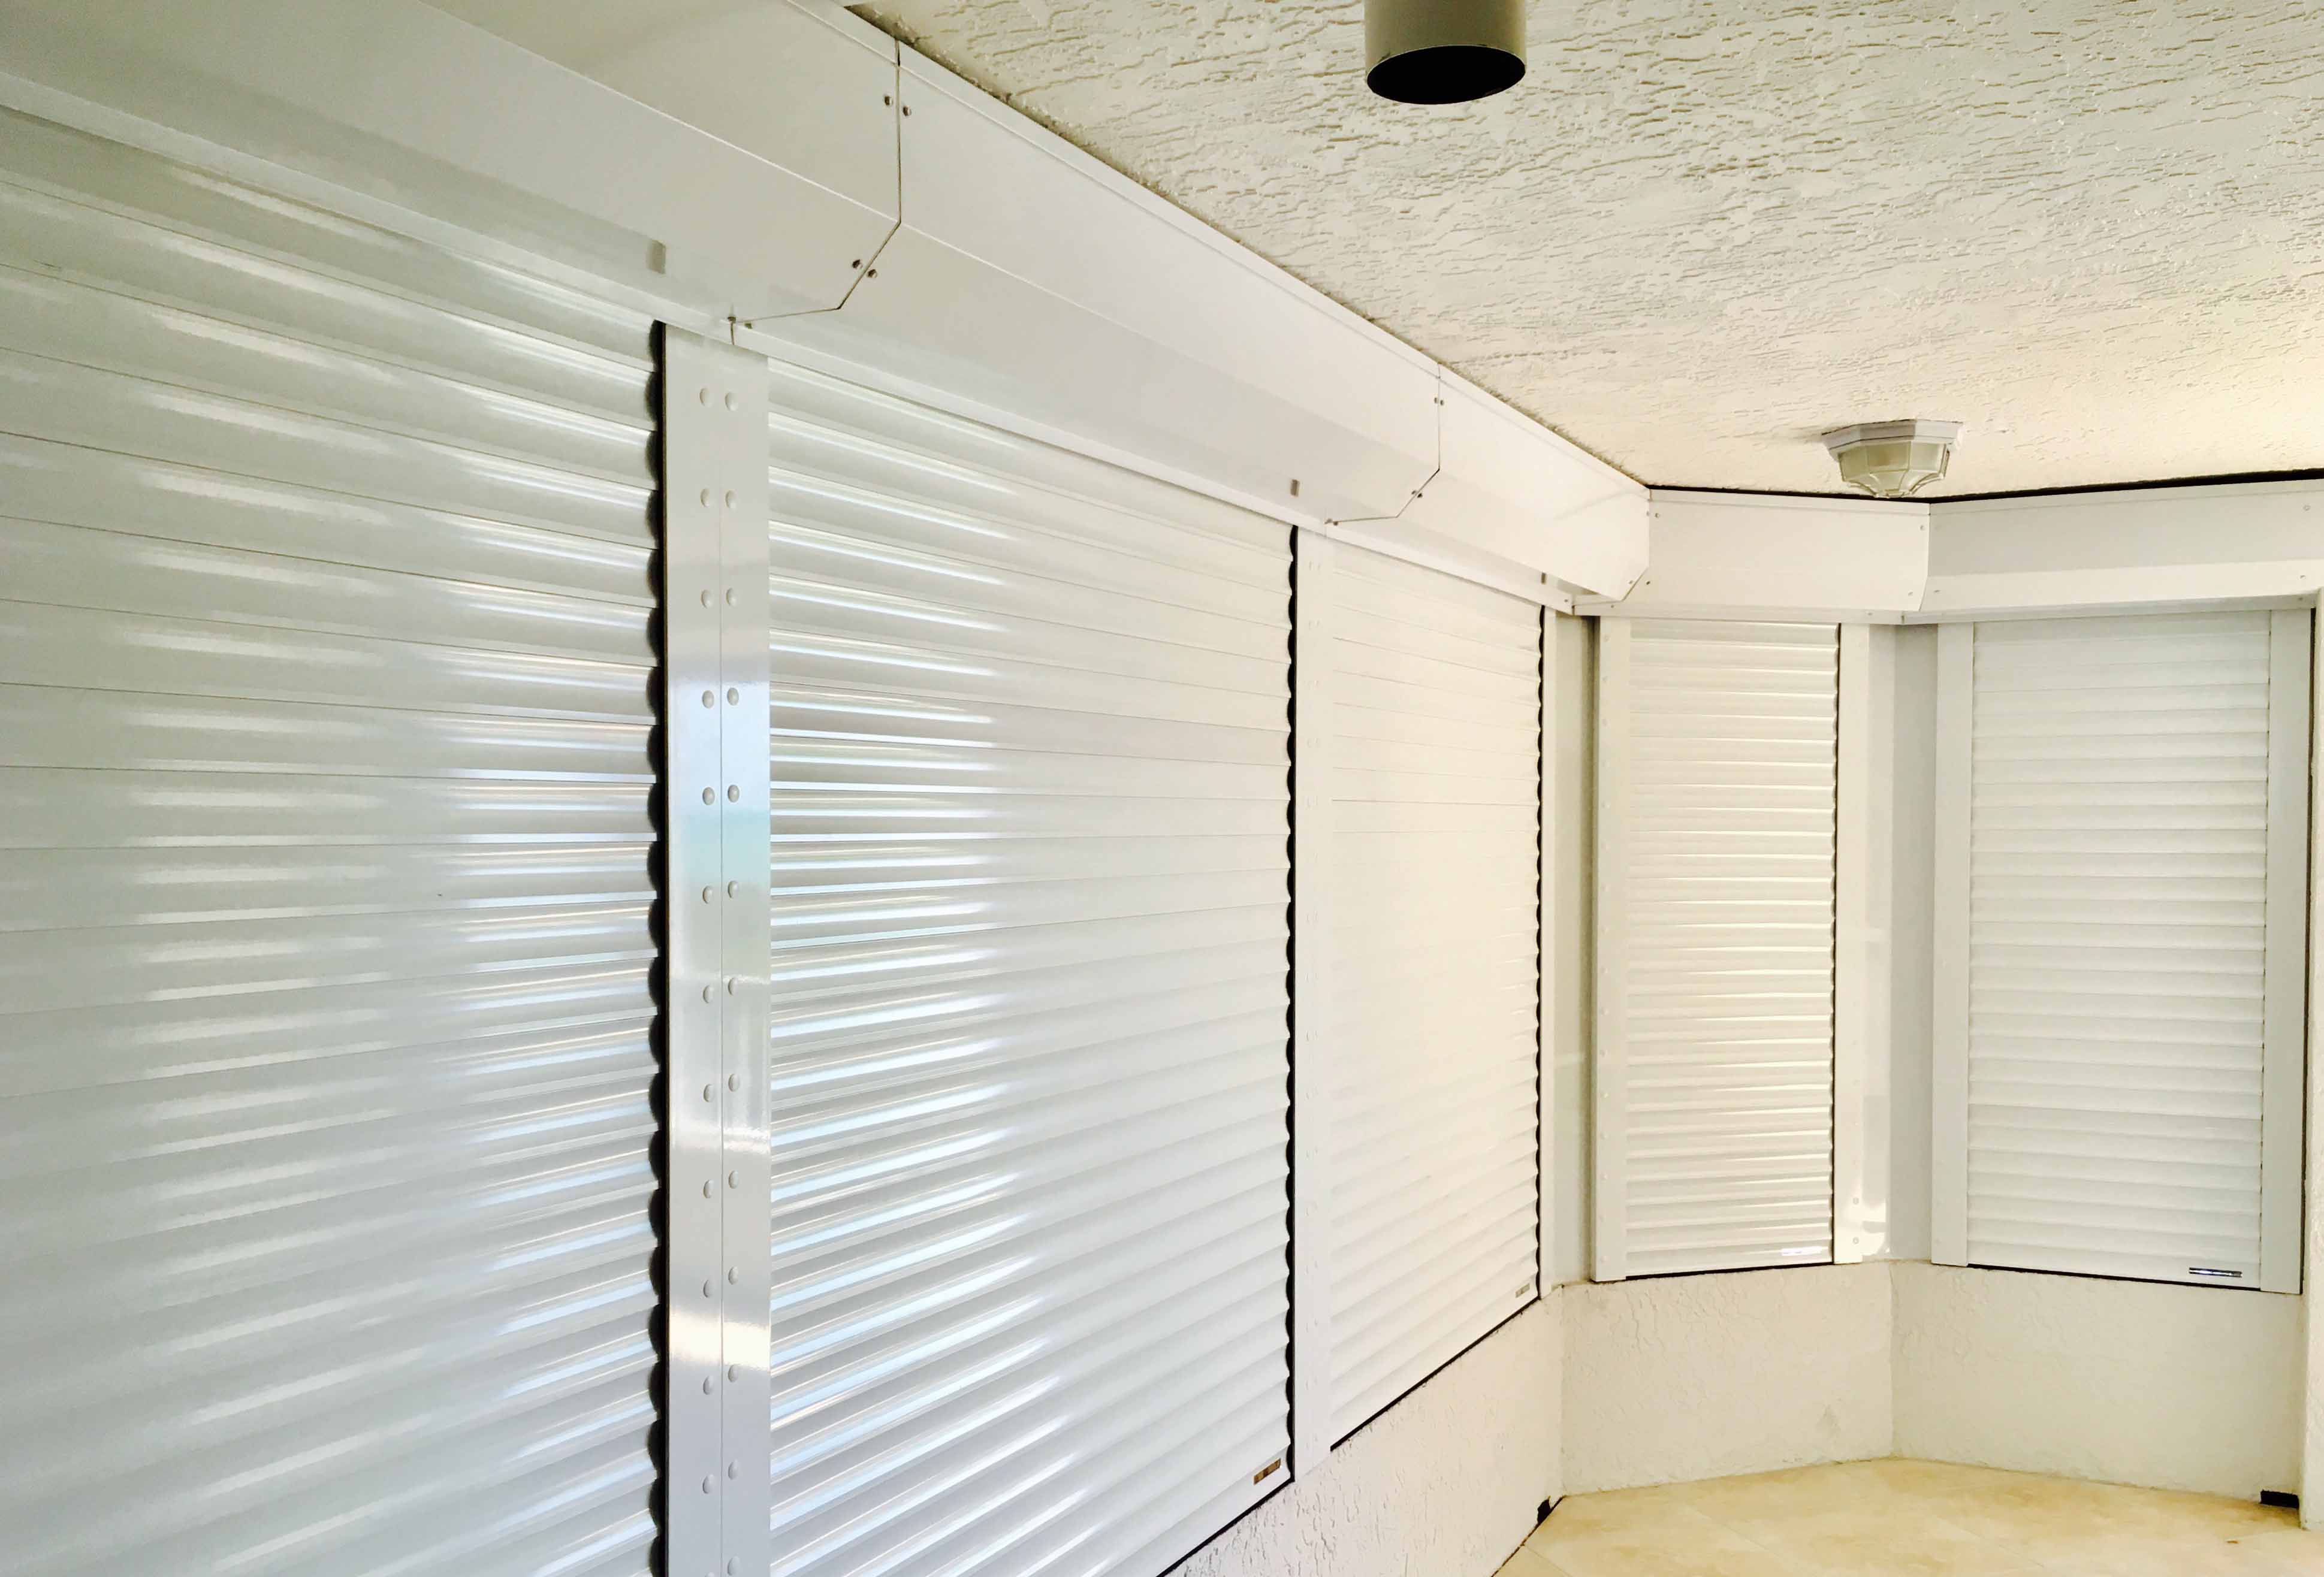 Gallery Roll Down 5 Star Hurricane Shutters